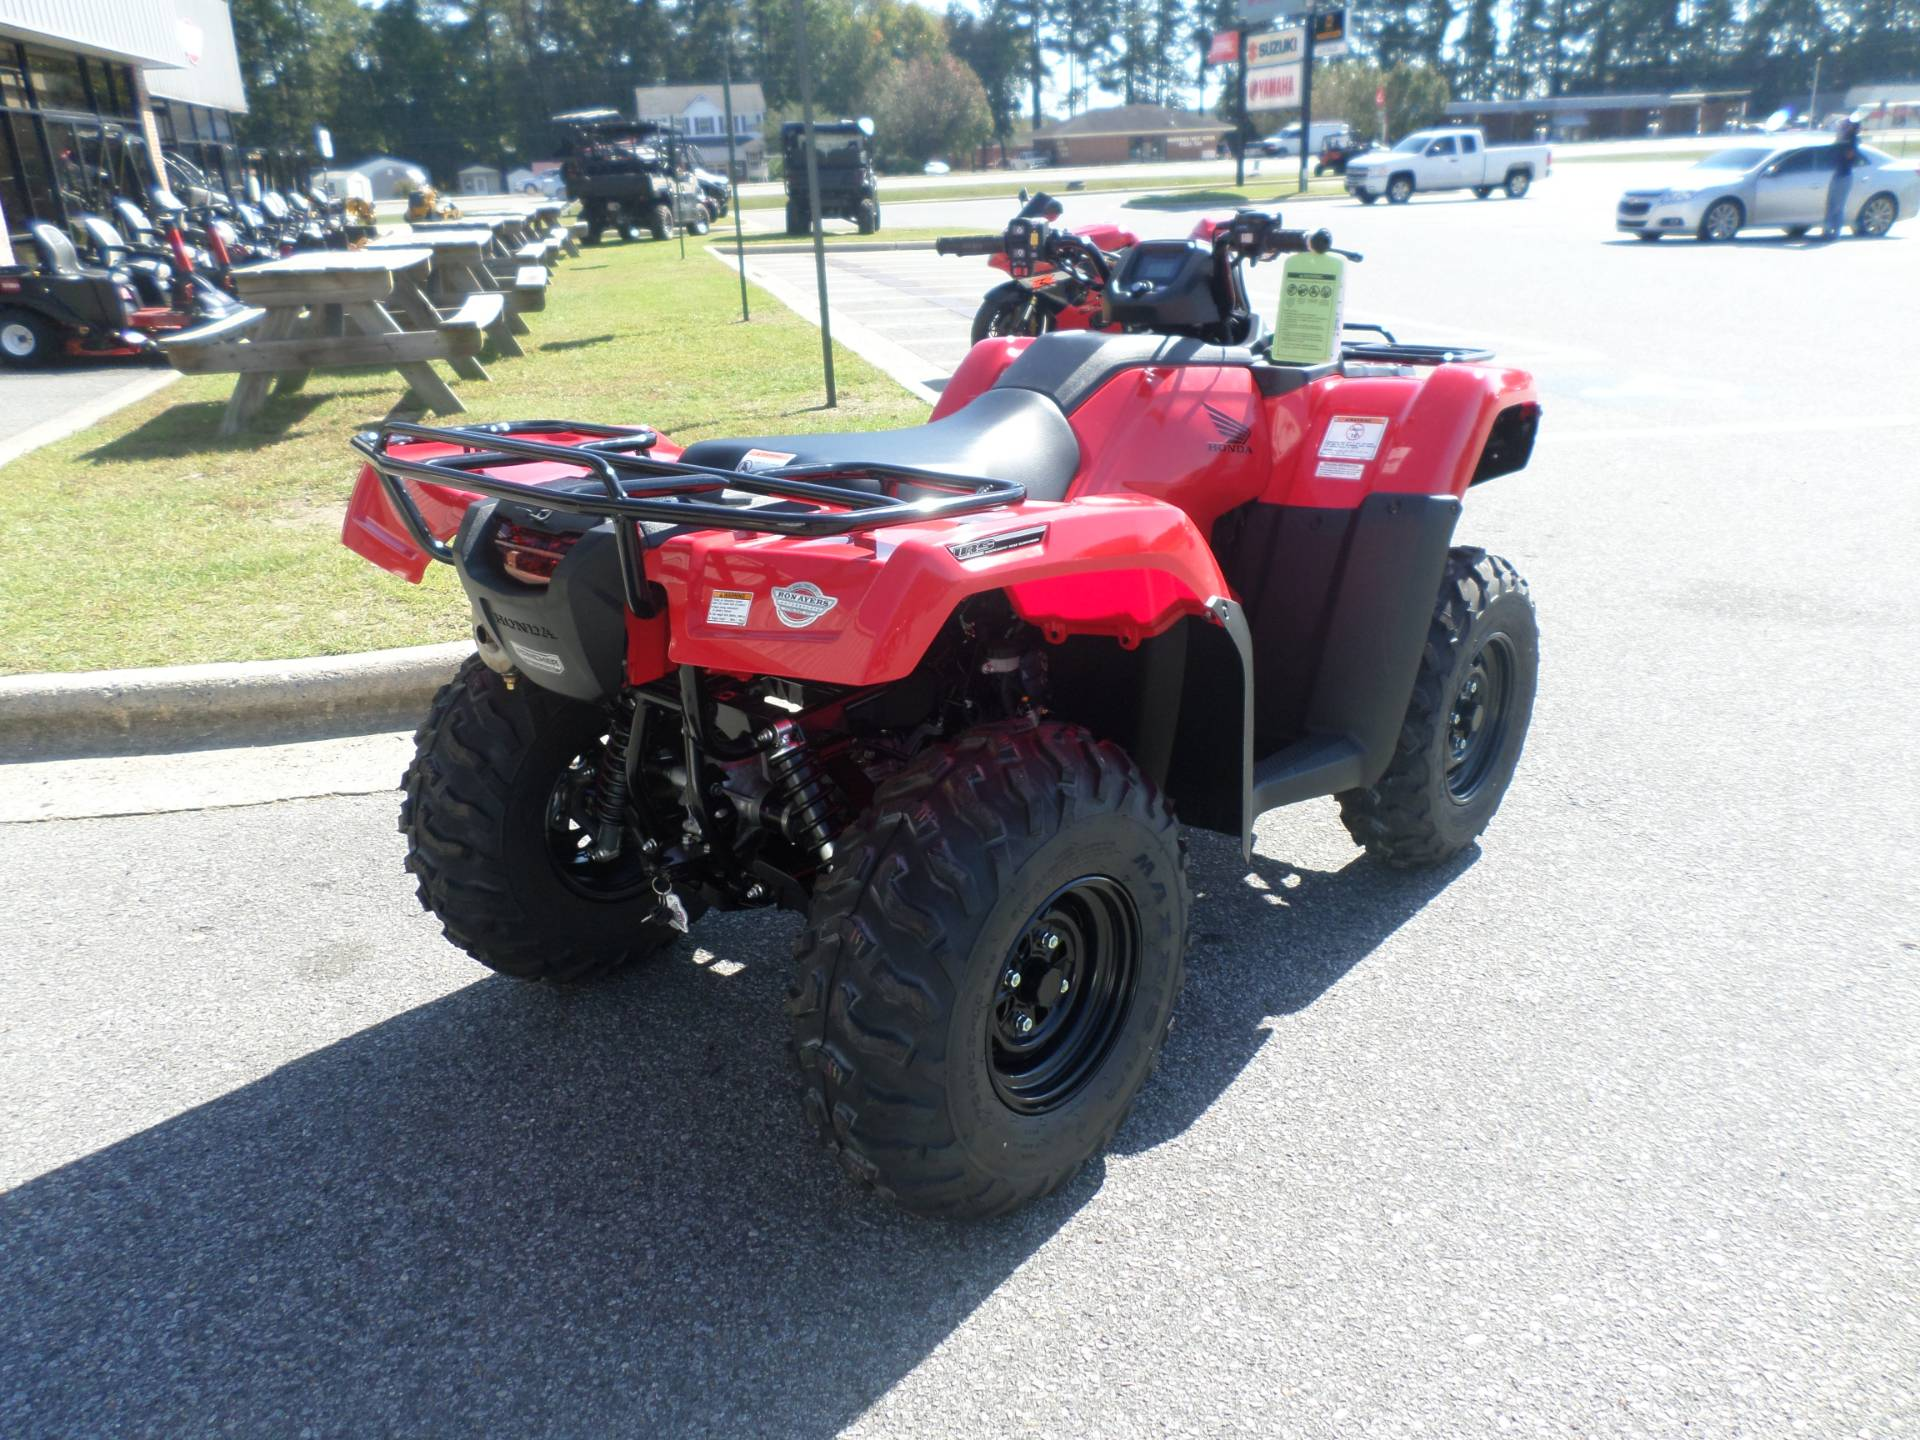 New 2018 Honda Fourtrax Rancher 4x4 Dct Irs Eps Atvs ...